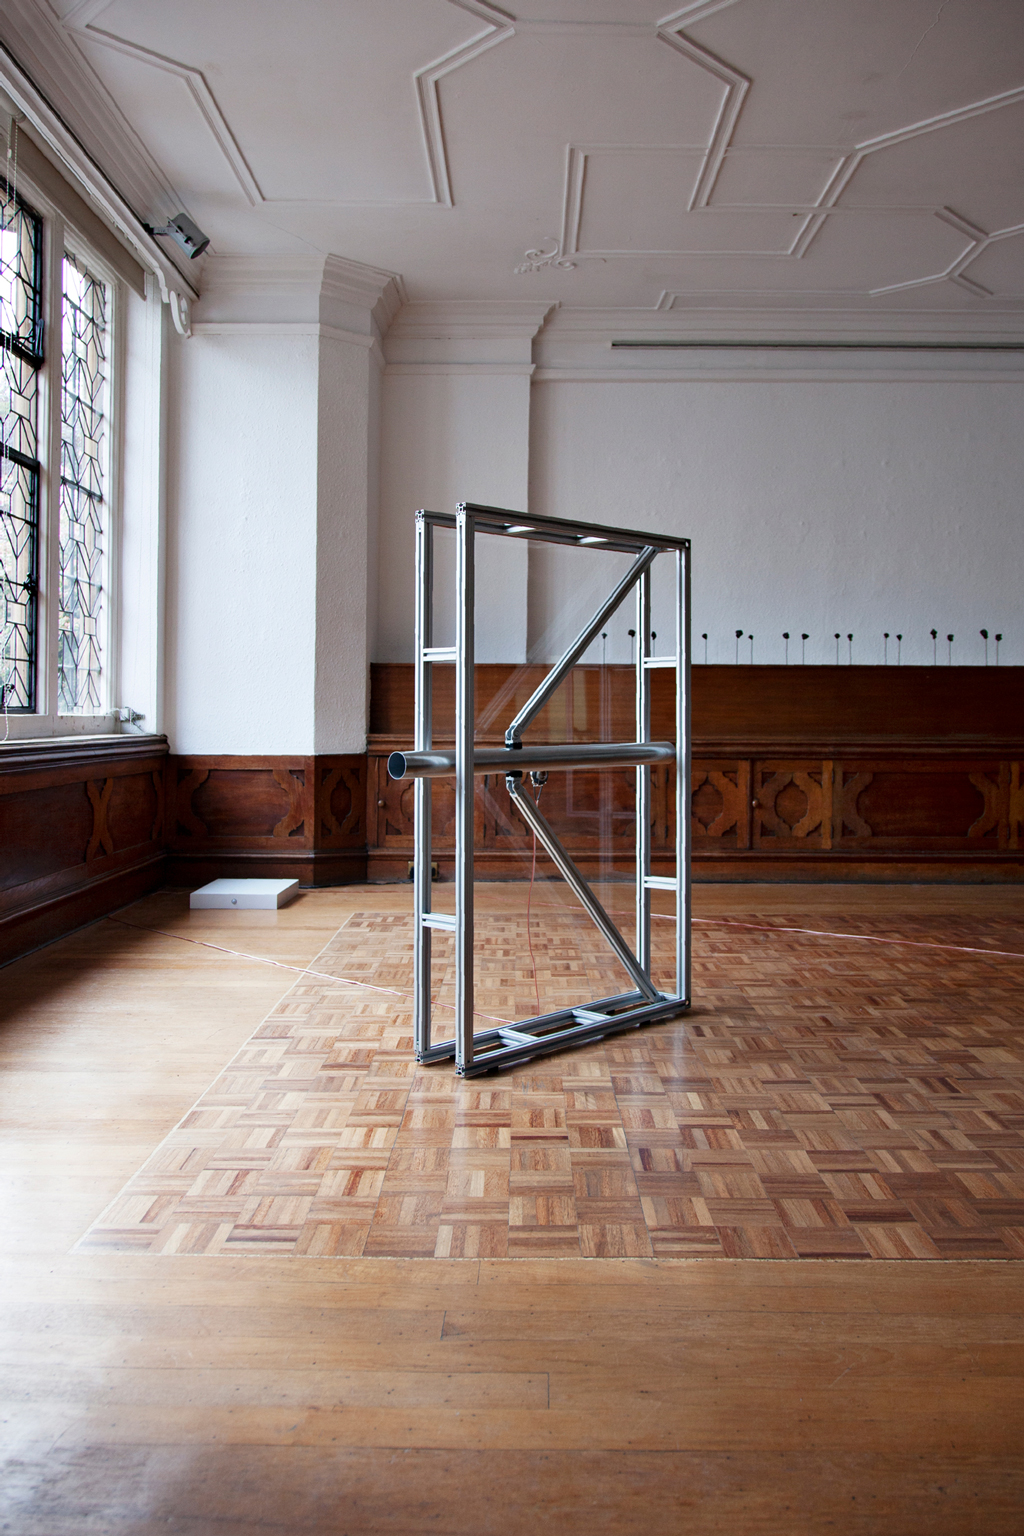 The Cost of Your Words by Fabio Lattanzi Antinori, Installation View at the Royal Society of Sculptors in London, 2020